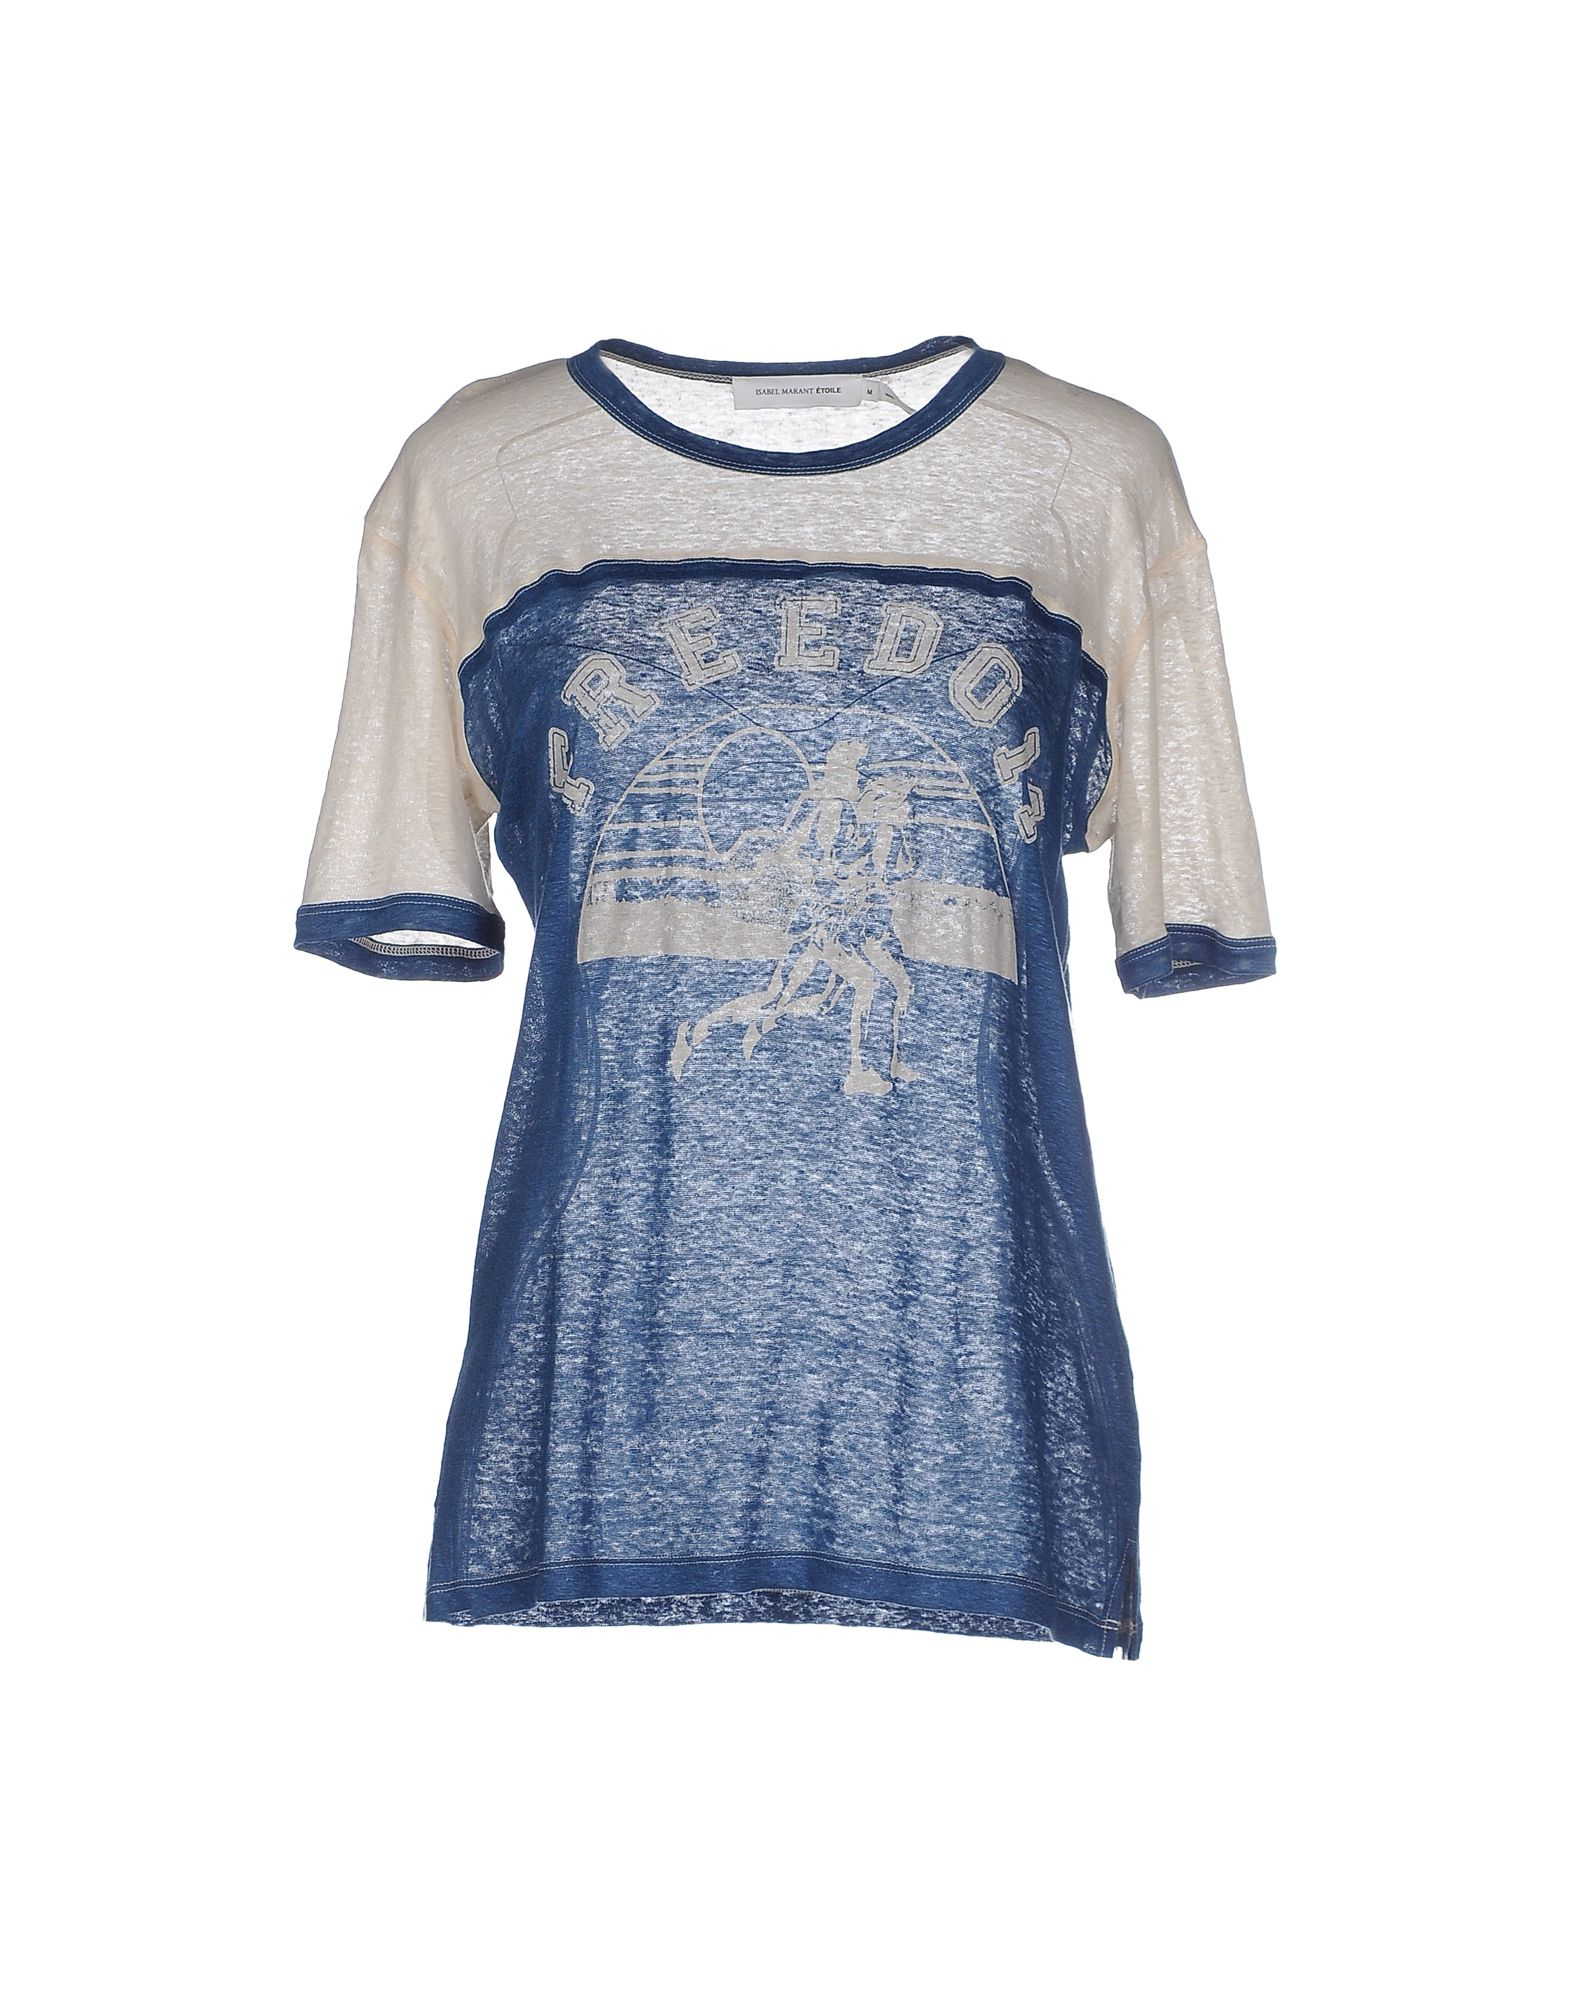 Lyst Toile Isabel Marant T Shirt In Blue